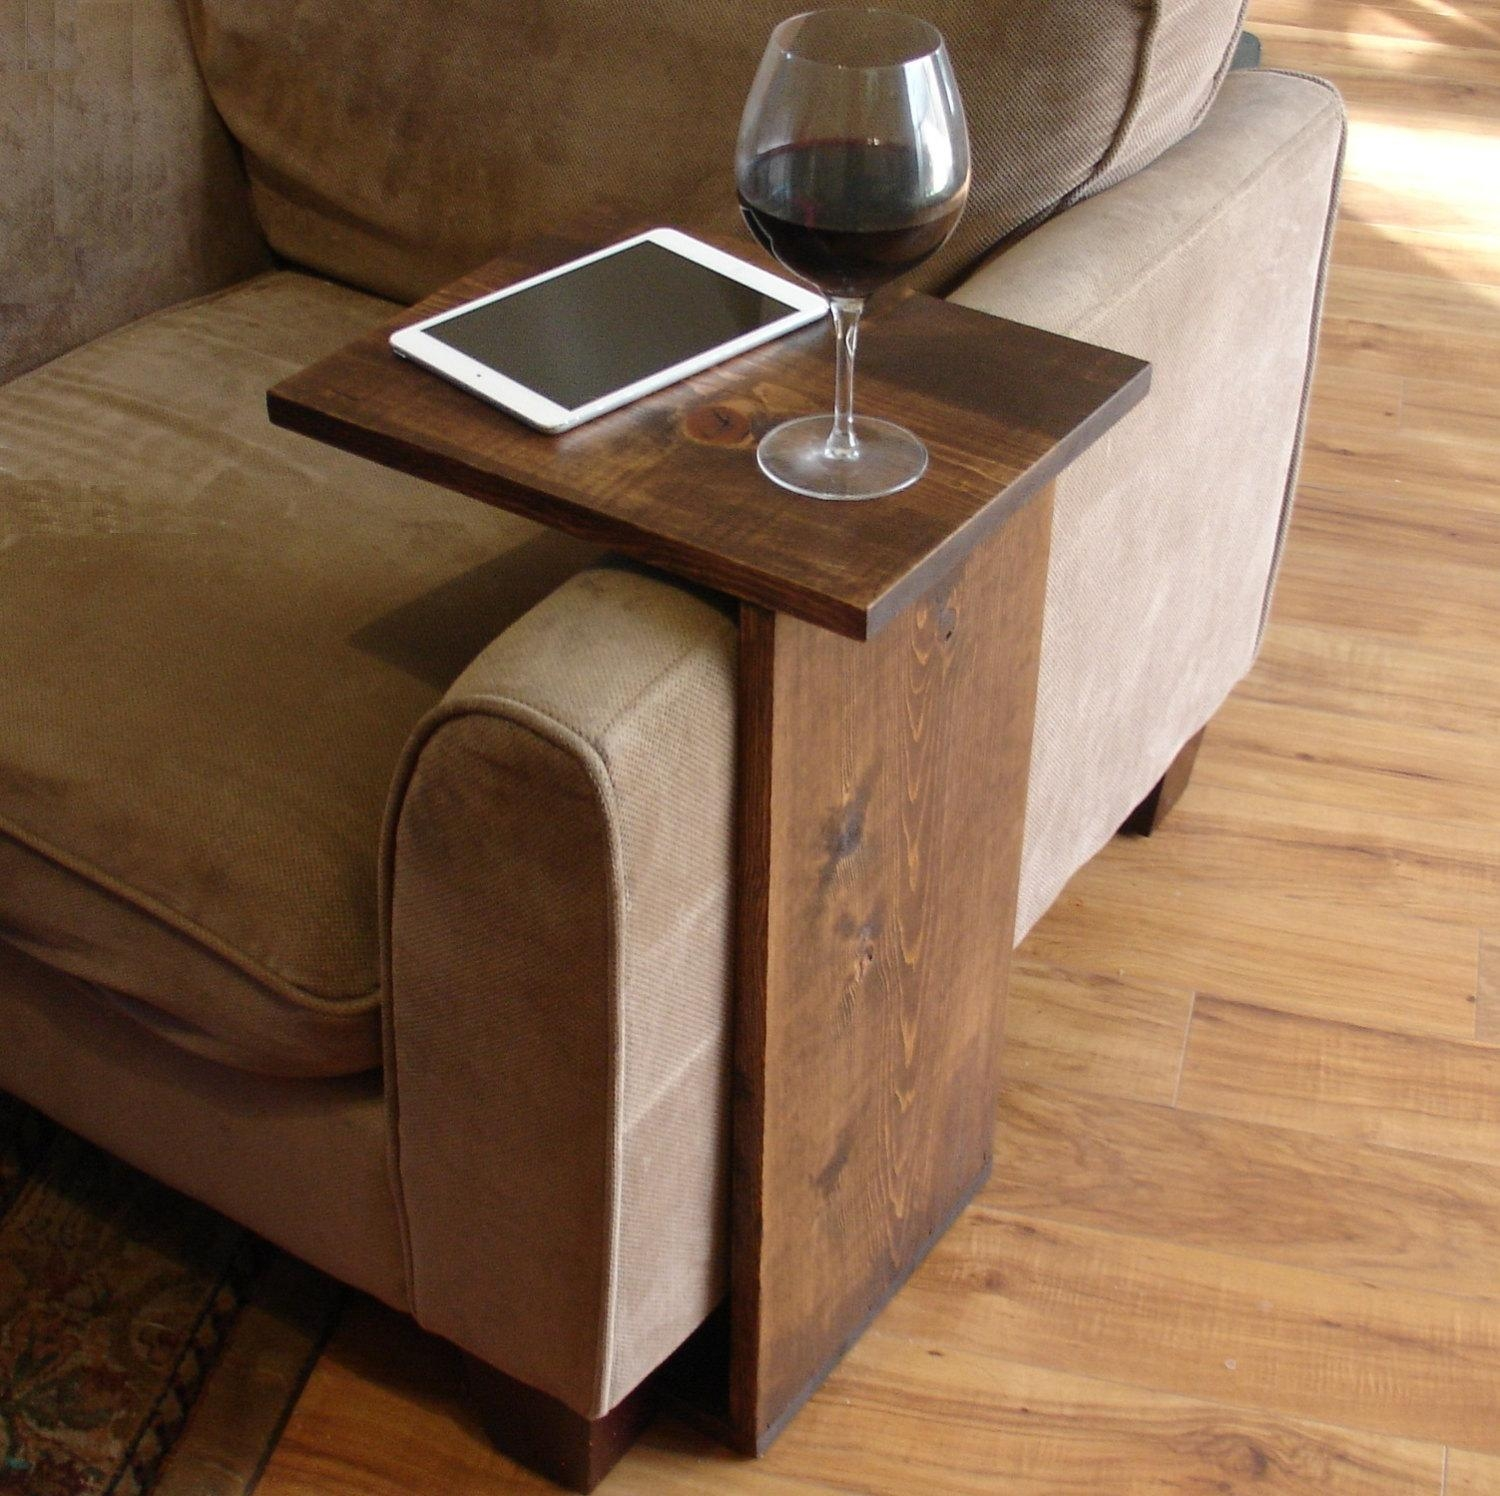 Sofa Chair Arm Rest Tray Table Stand Throughout Sofa Drink Tables (Image 16 of 20)